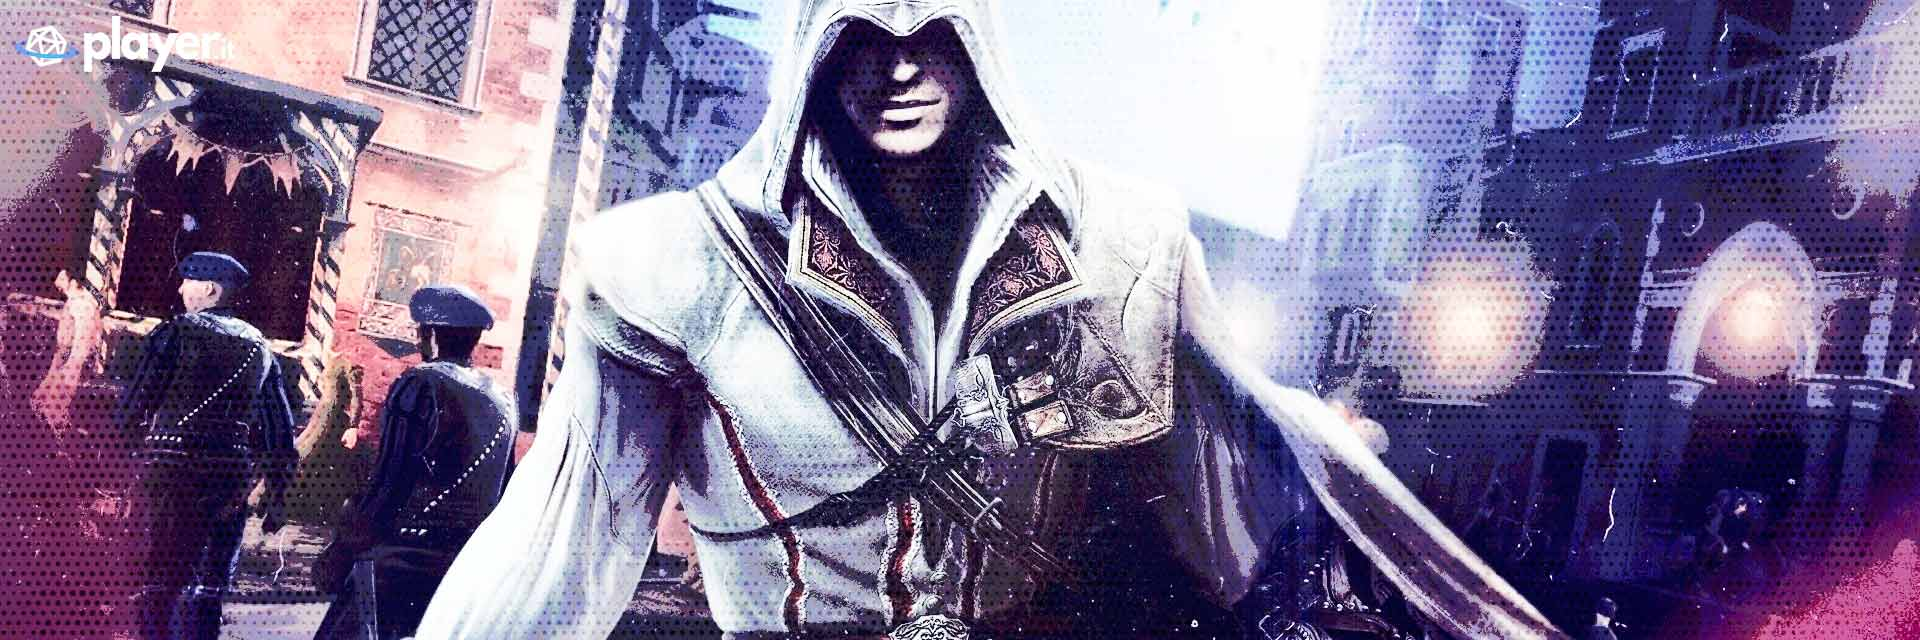 assassin's creed II wallpaper in hd